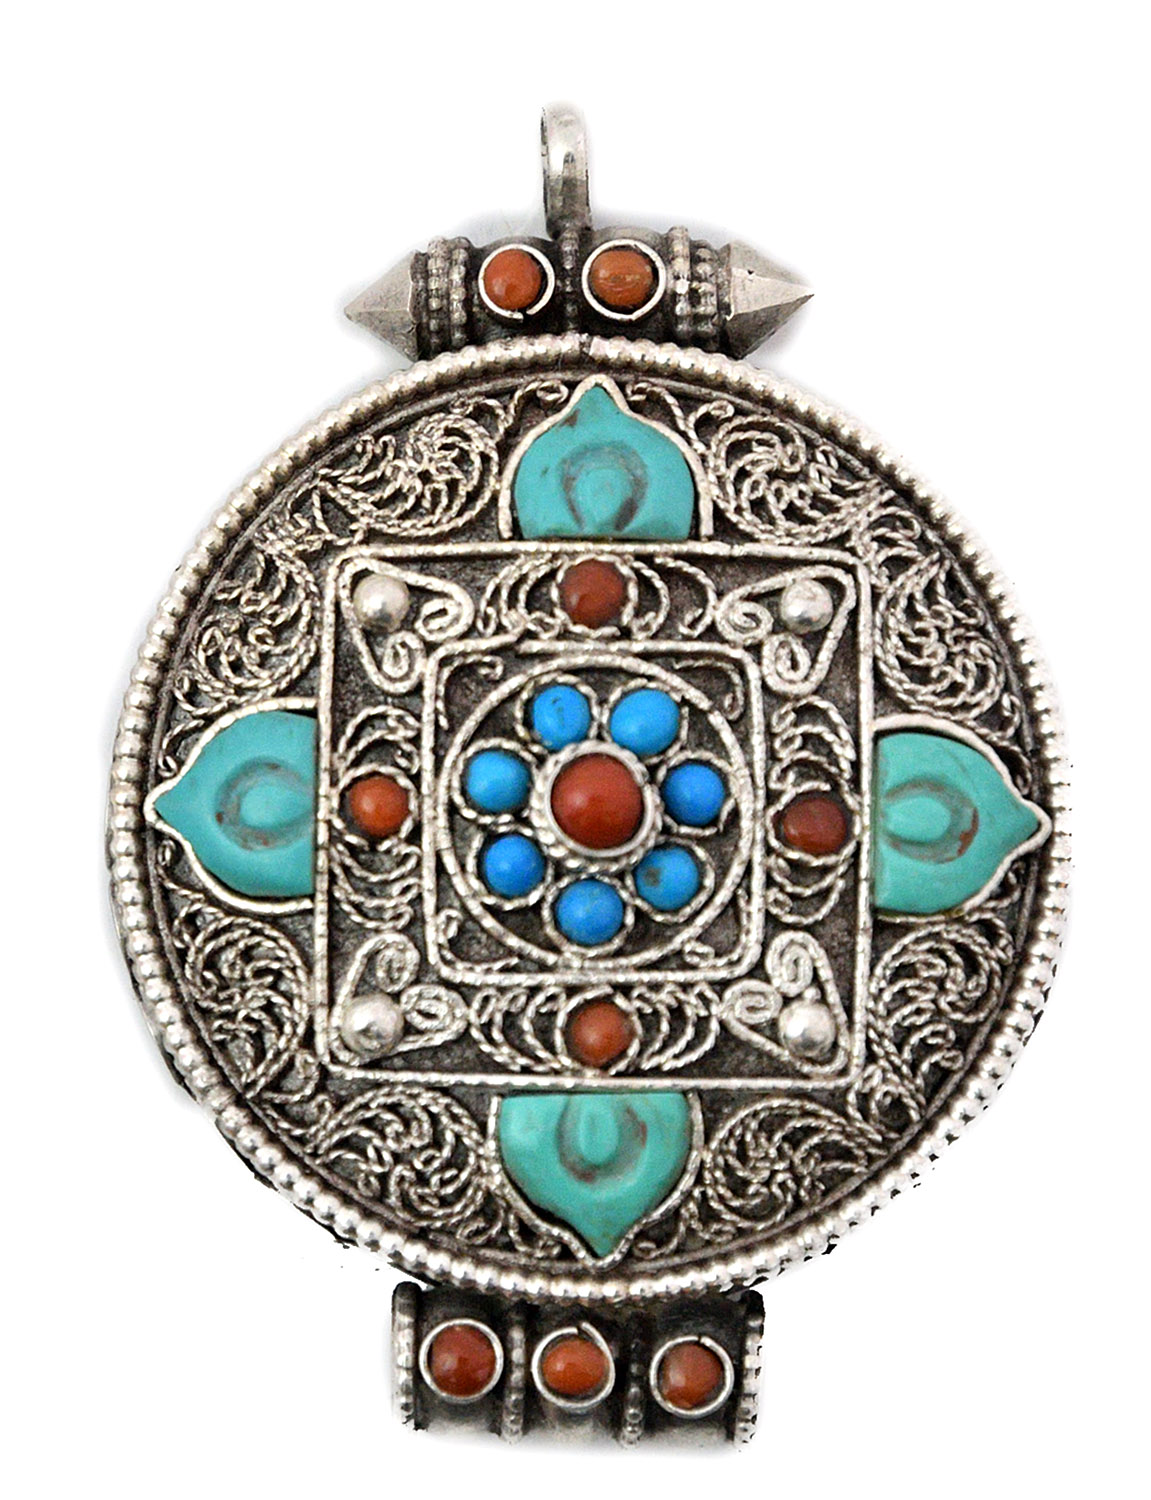 Cot In A Box Morocco Turquoise: Mandala Gau Box Pendant With Coral, Turquoise And Filigree